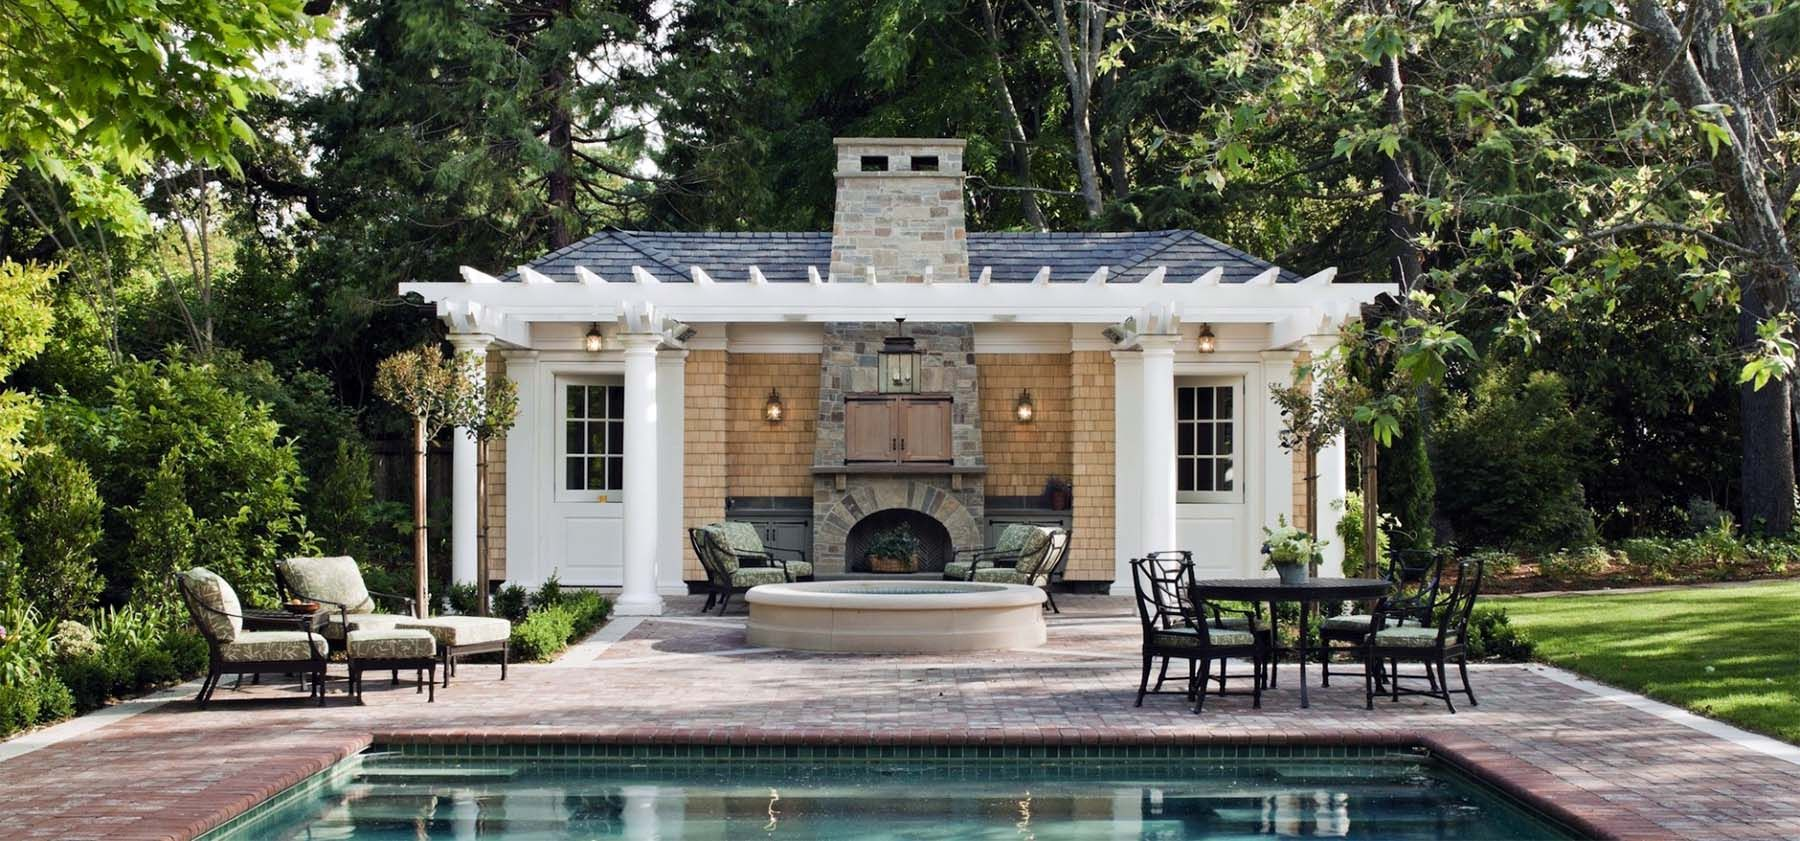 Small Pool House Design With Tan Cedar Shake Siding White Arbor Real Stone Outdoor Fireplace In 2020 Pool House Designs Guest House Plans Small Pool Houses